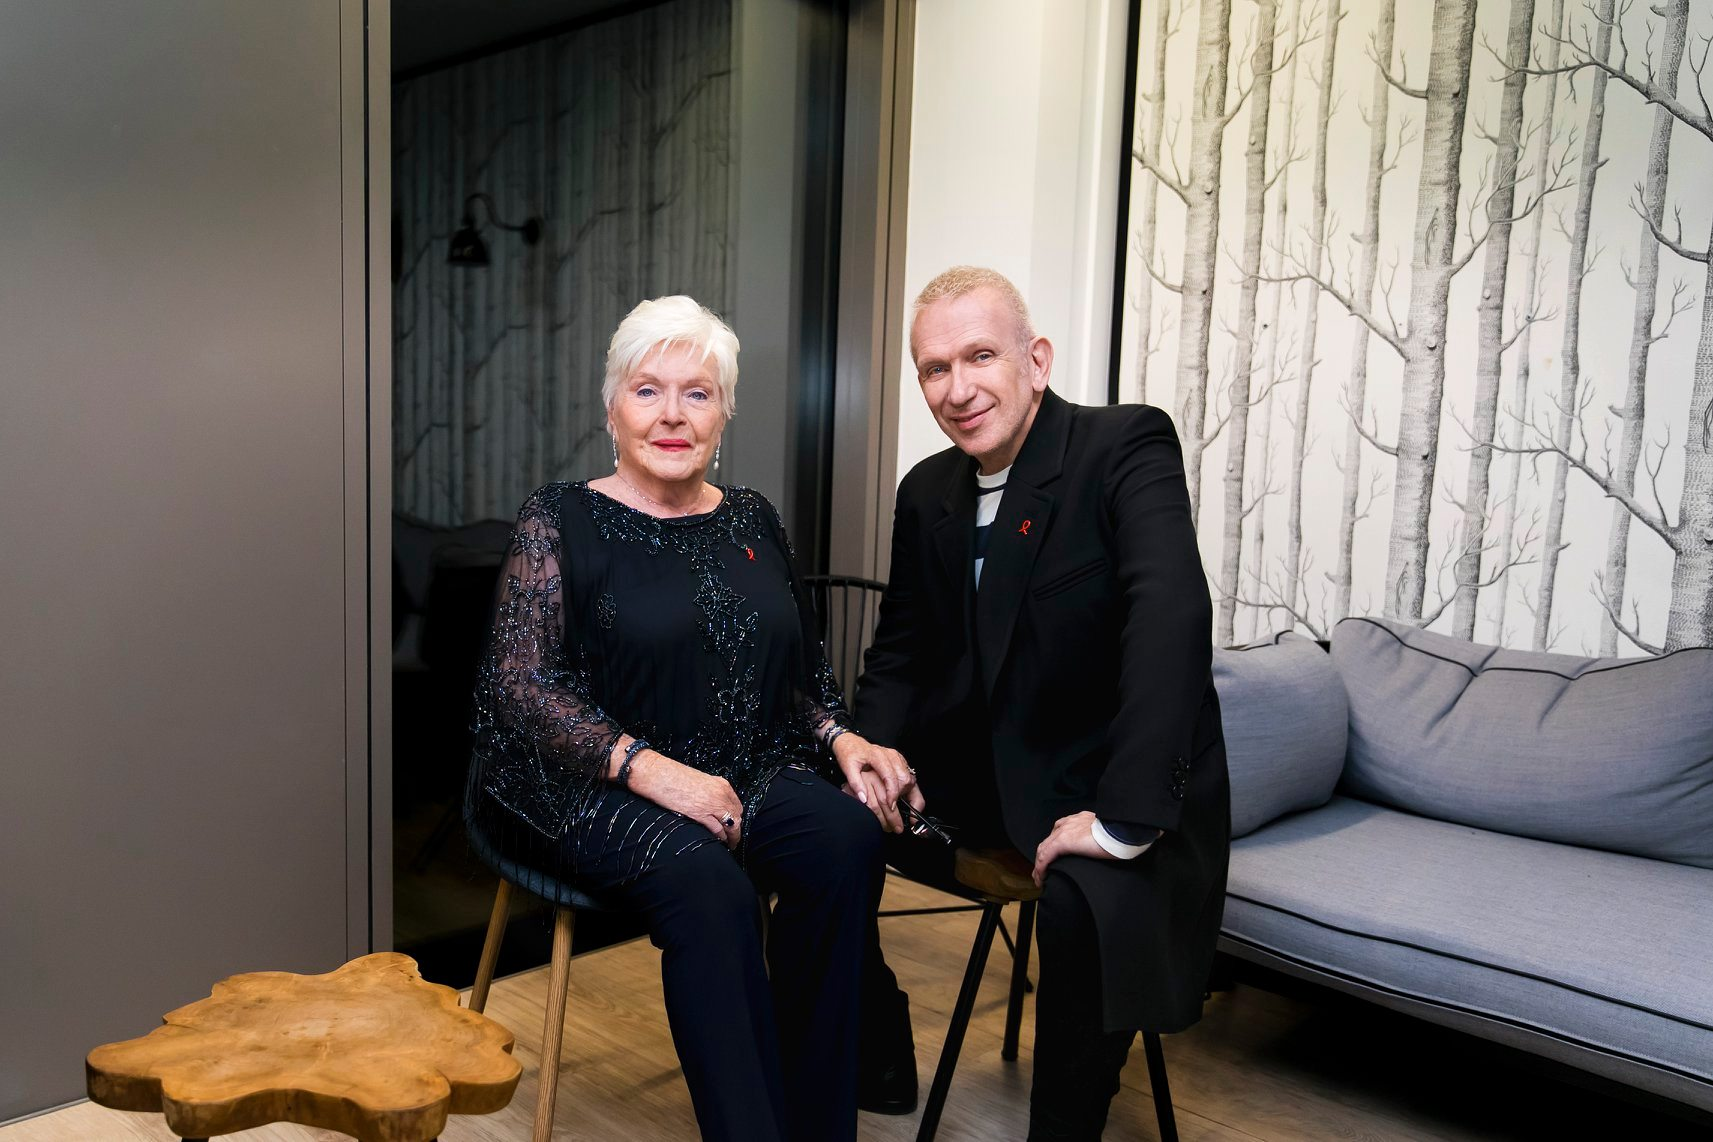 Line Renaud and Jean-Paul Gaultier